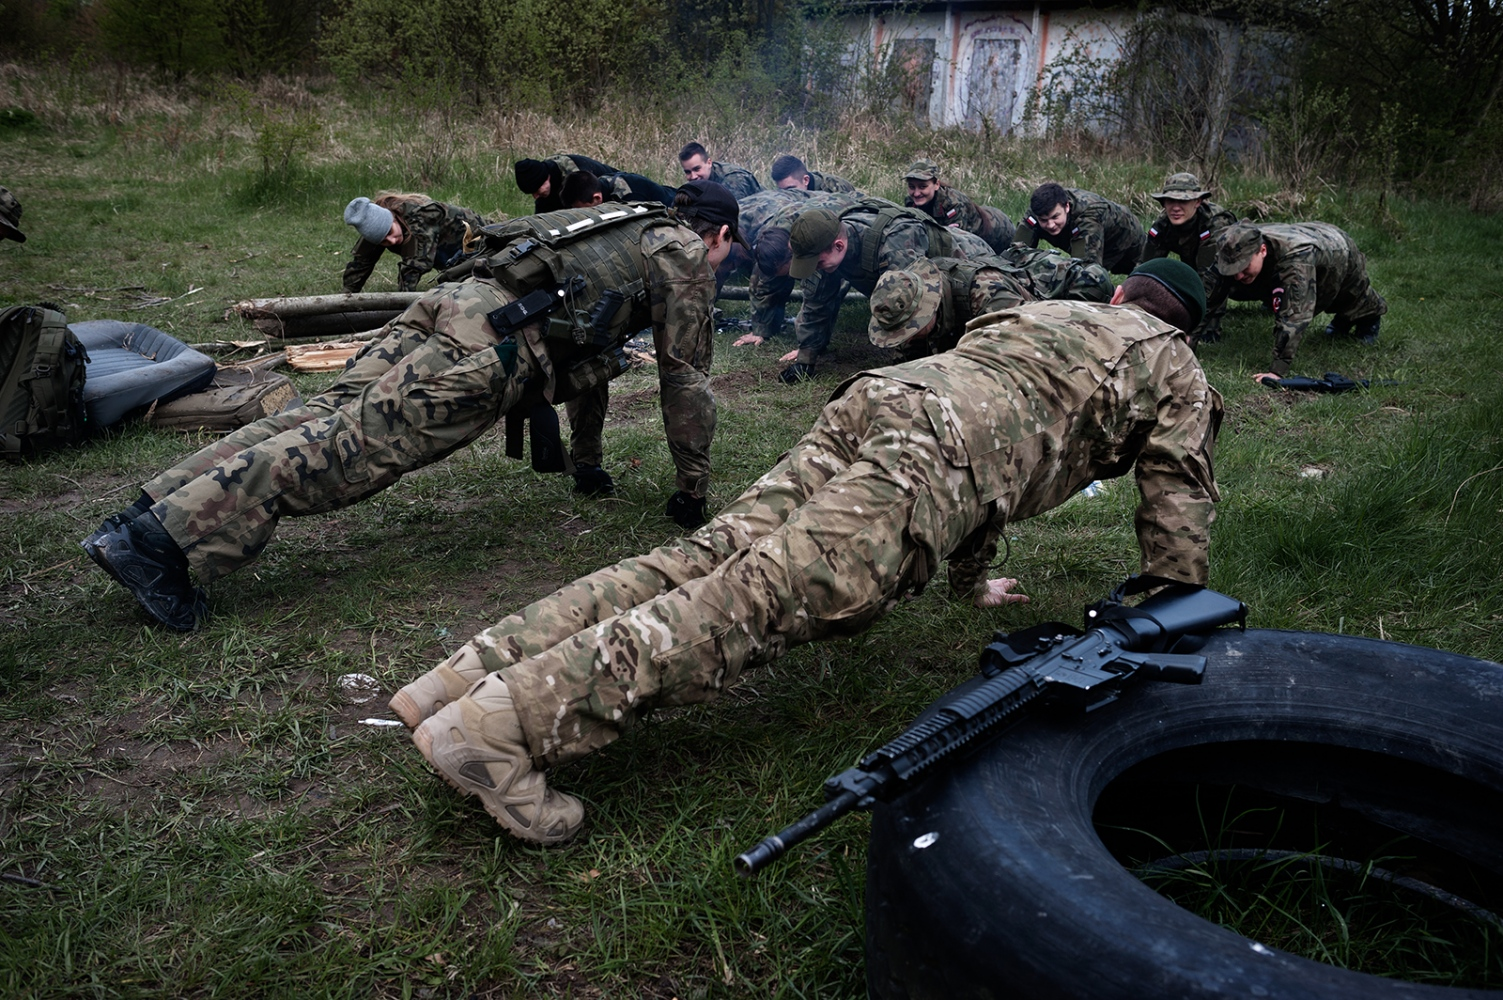 """Practical part of the activities carried out within the framework of """"Military Profile Classes"""". Theactivities are carried out by a private paramilitary organization under the responsibility of the school."""